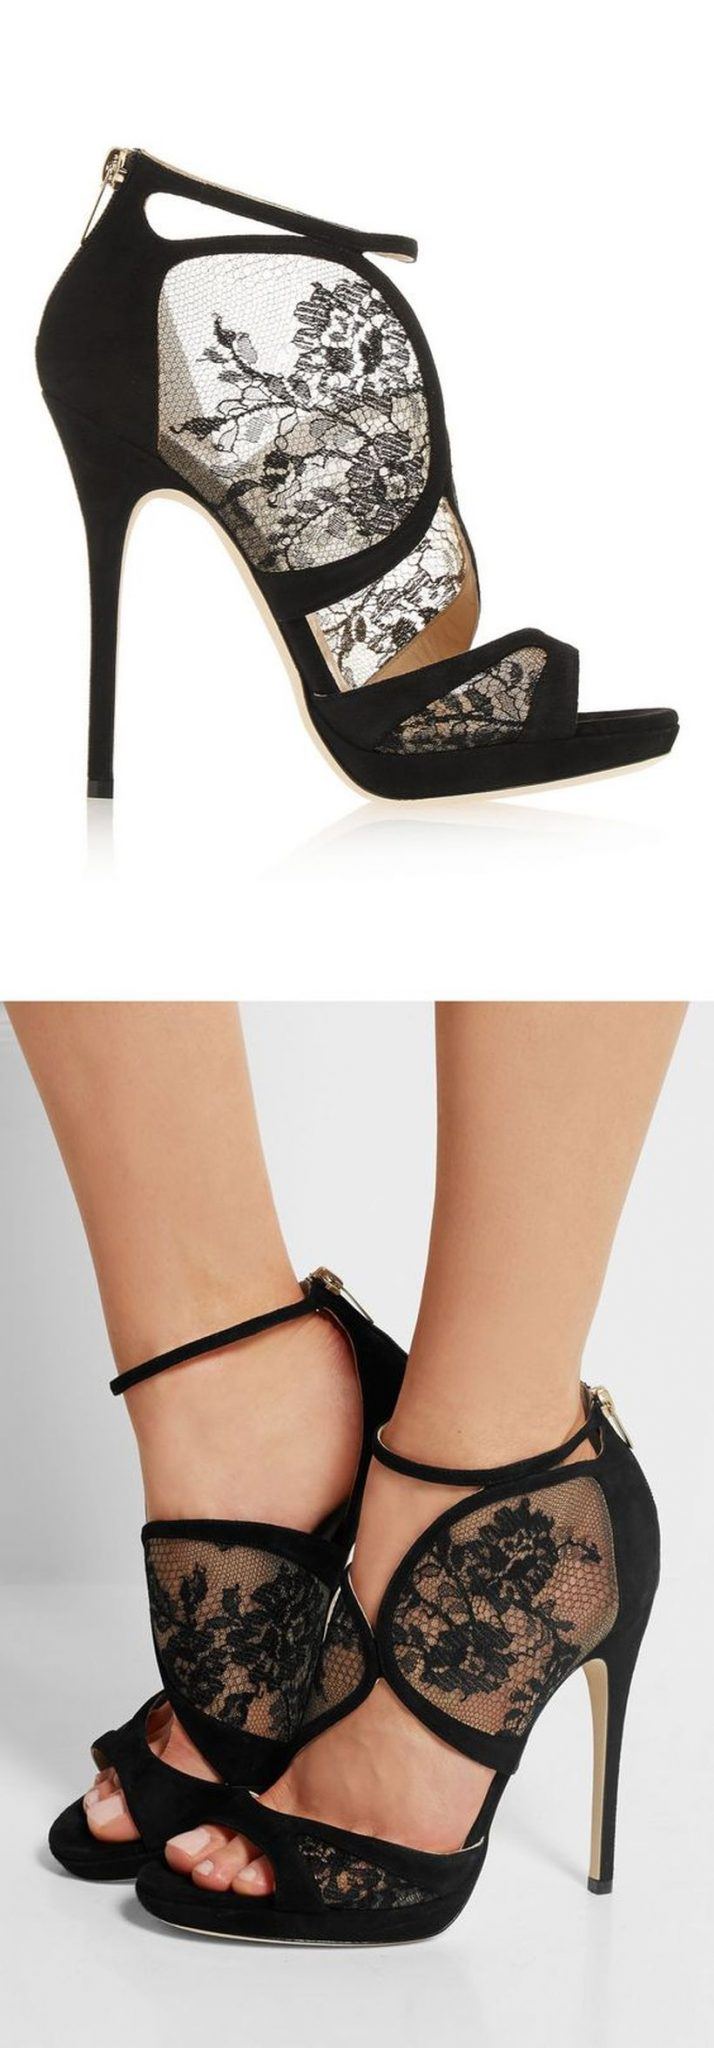 Most glorious heels that make you want to have it 17